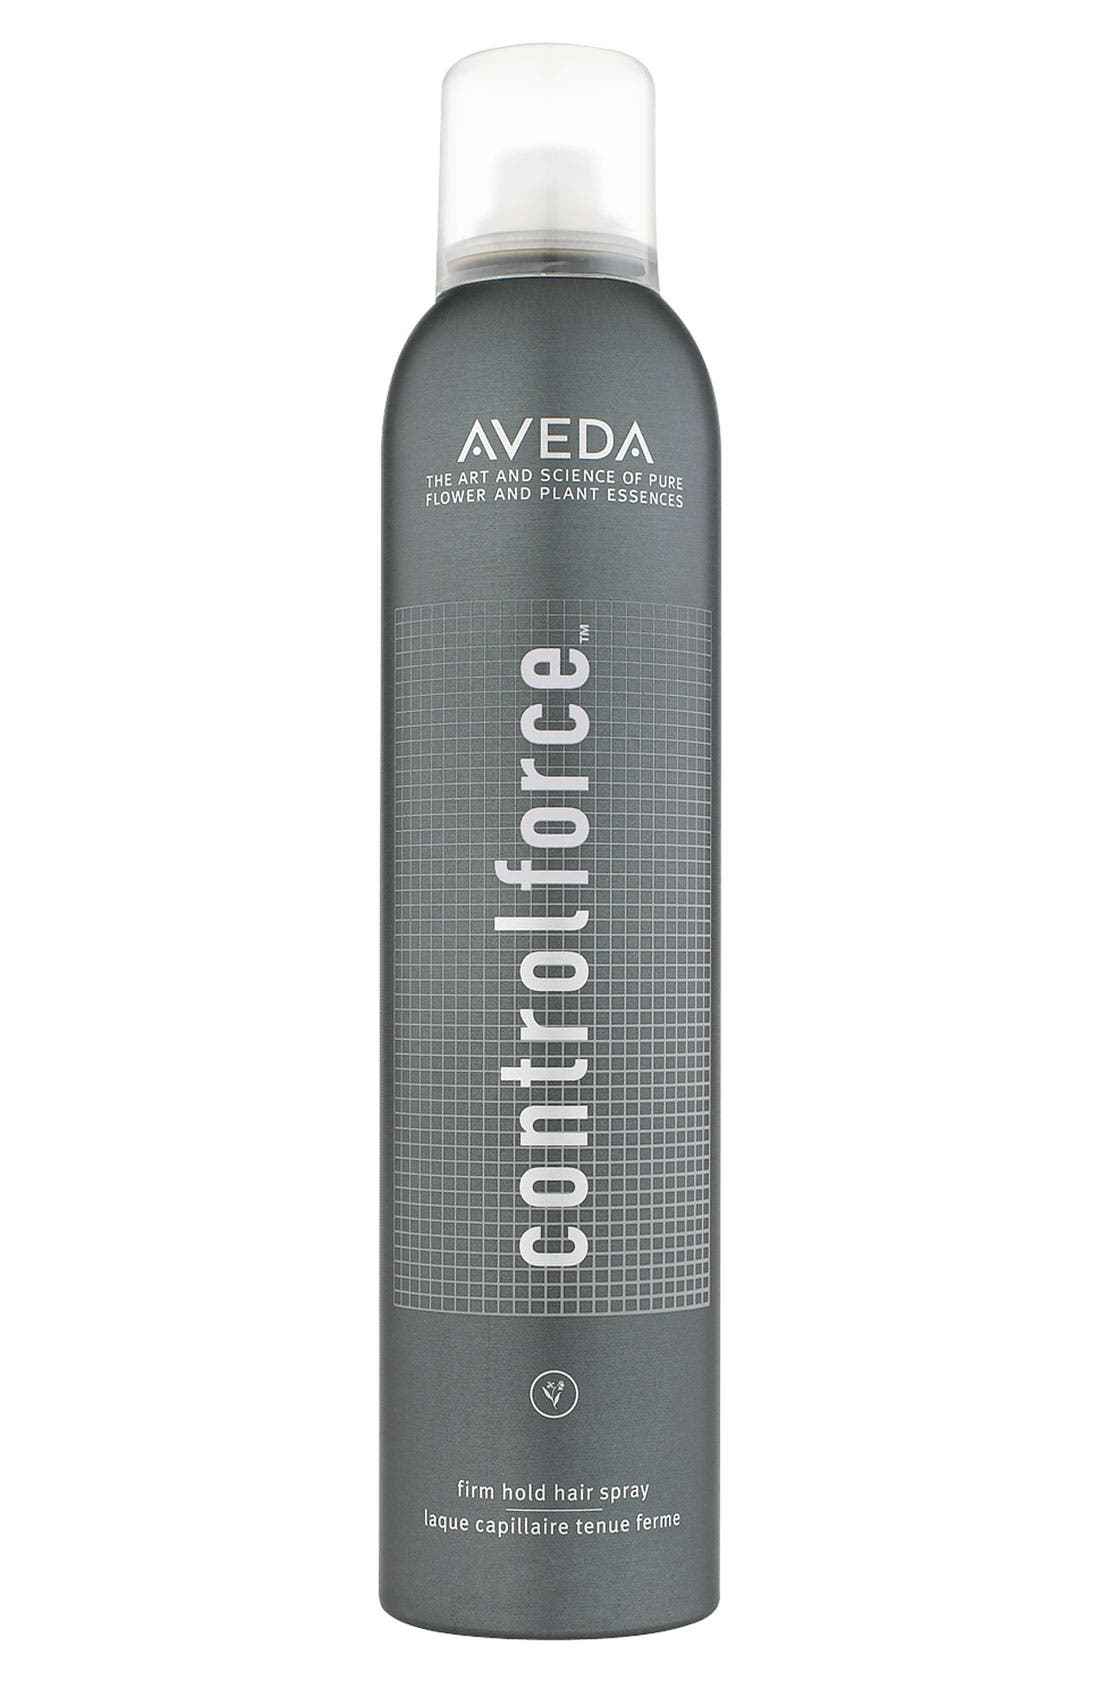 Aveda 'control force™' Firm Hold Hair Spray